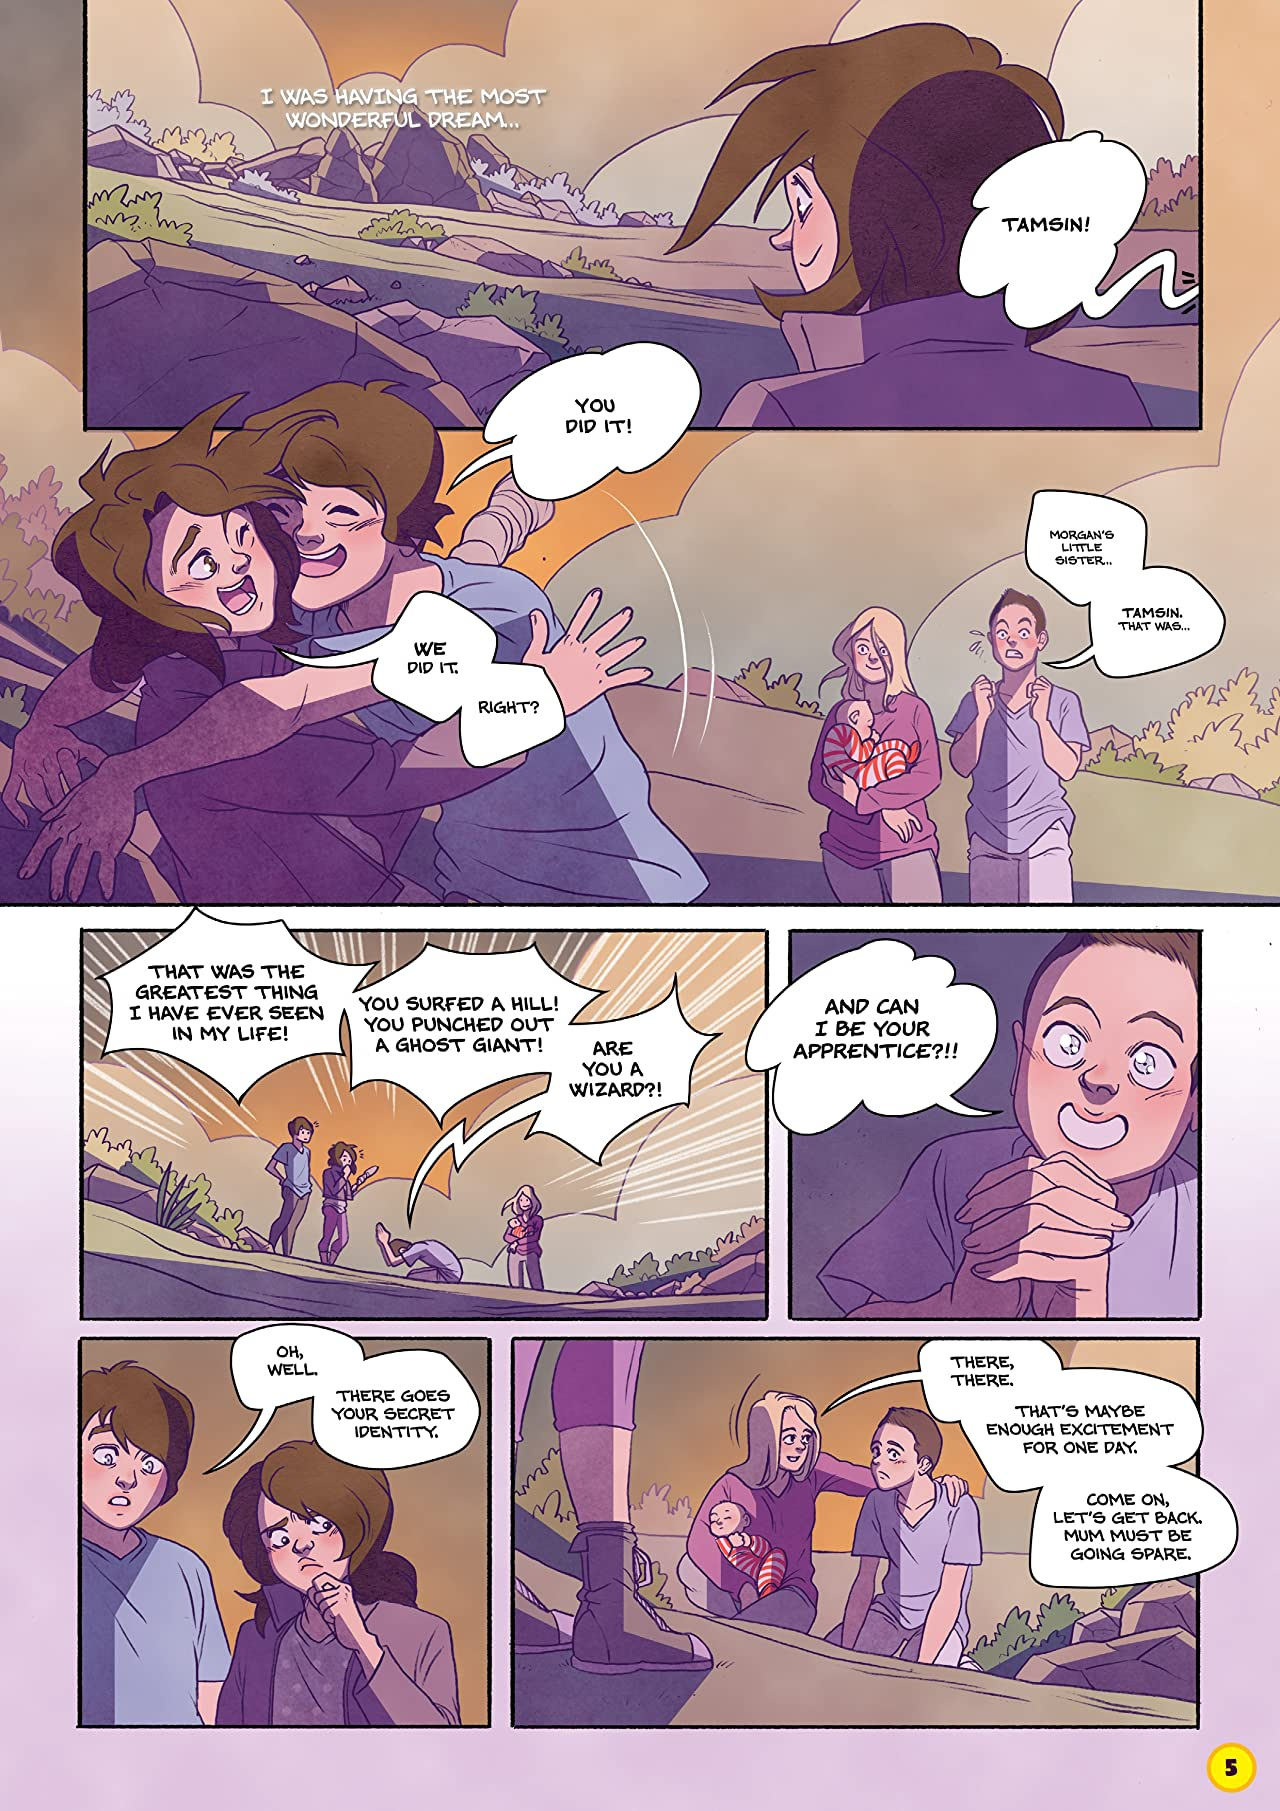 The Phoenix #243: The Weekly Story Comic